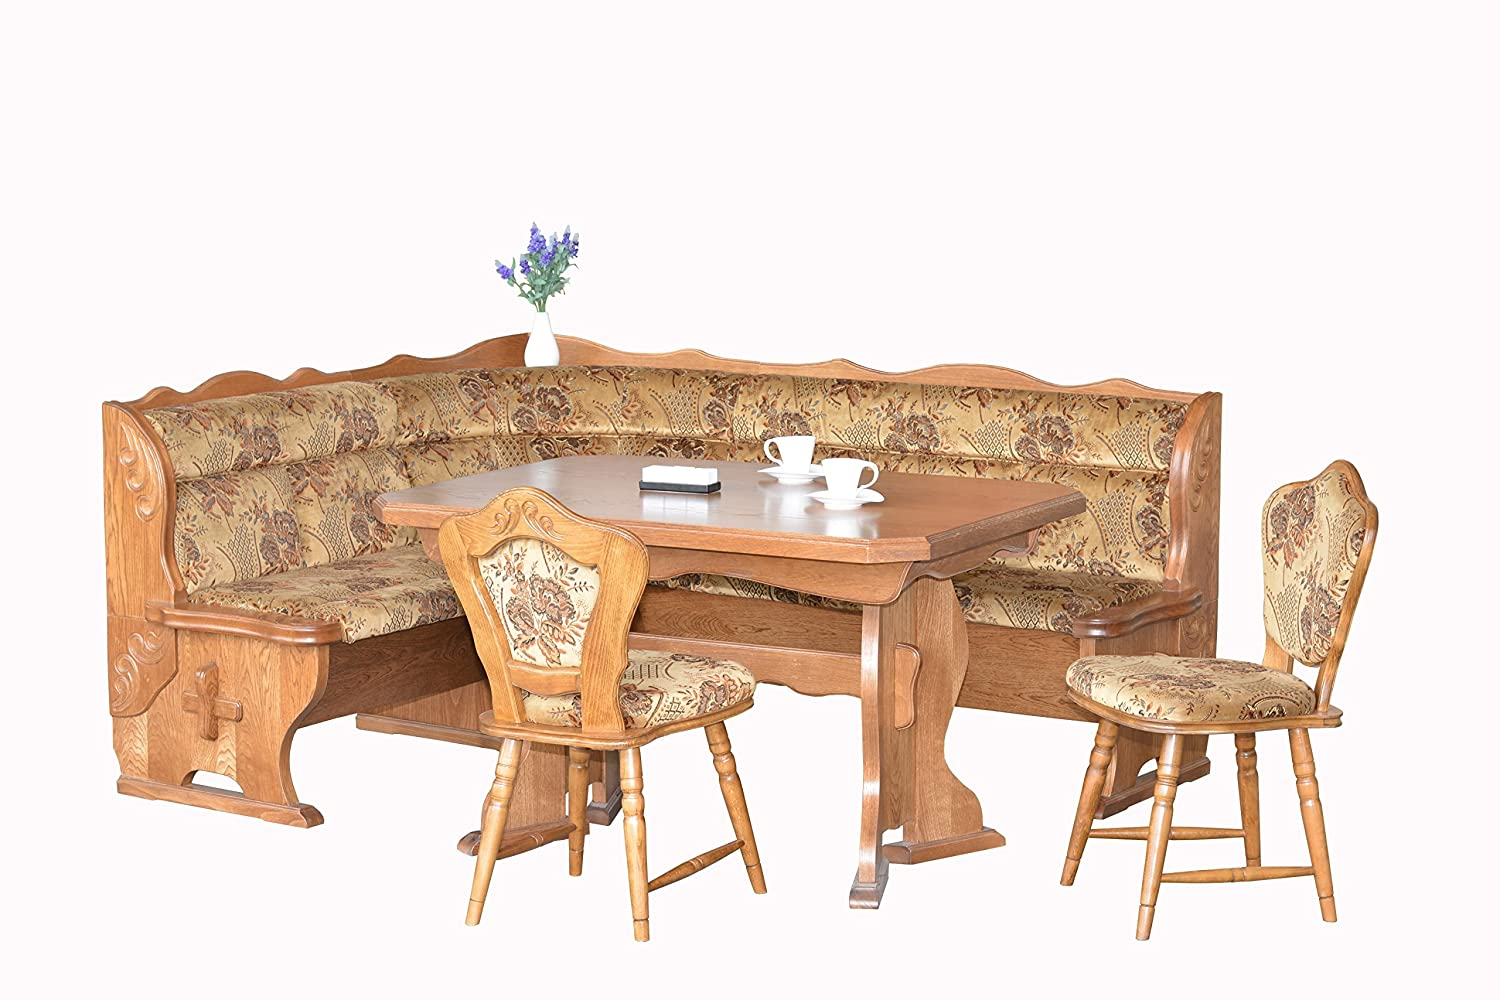 European Dining Furniture Set Breakfast Nook Bench Made From Oak 4 Piece Corner Enjoy The Best Table Luxury